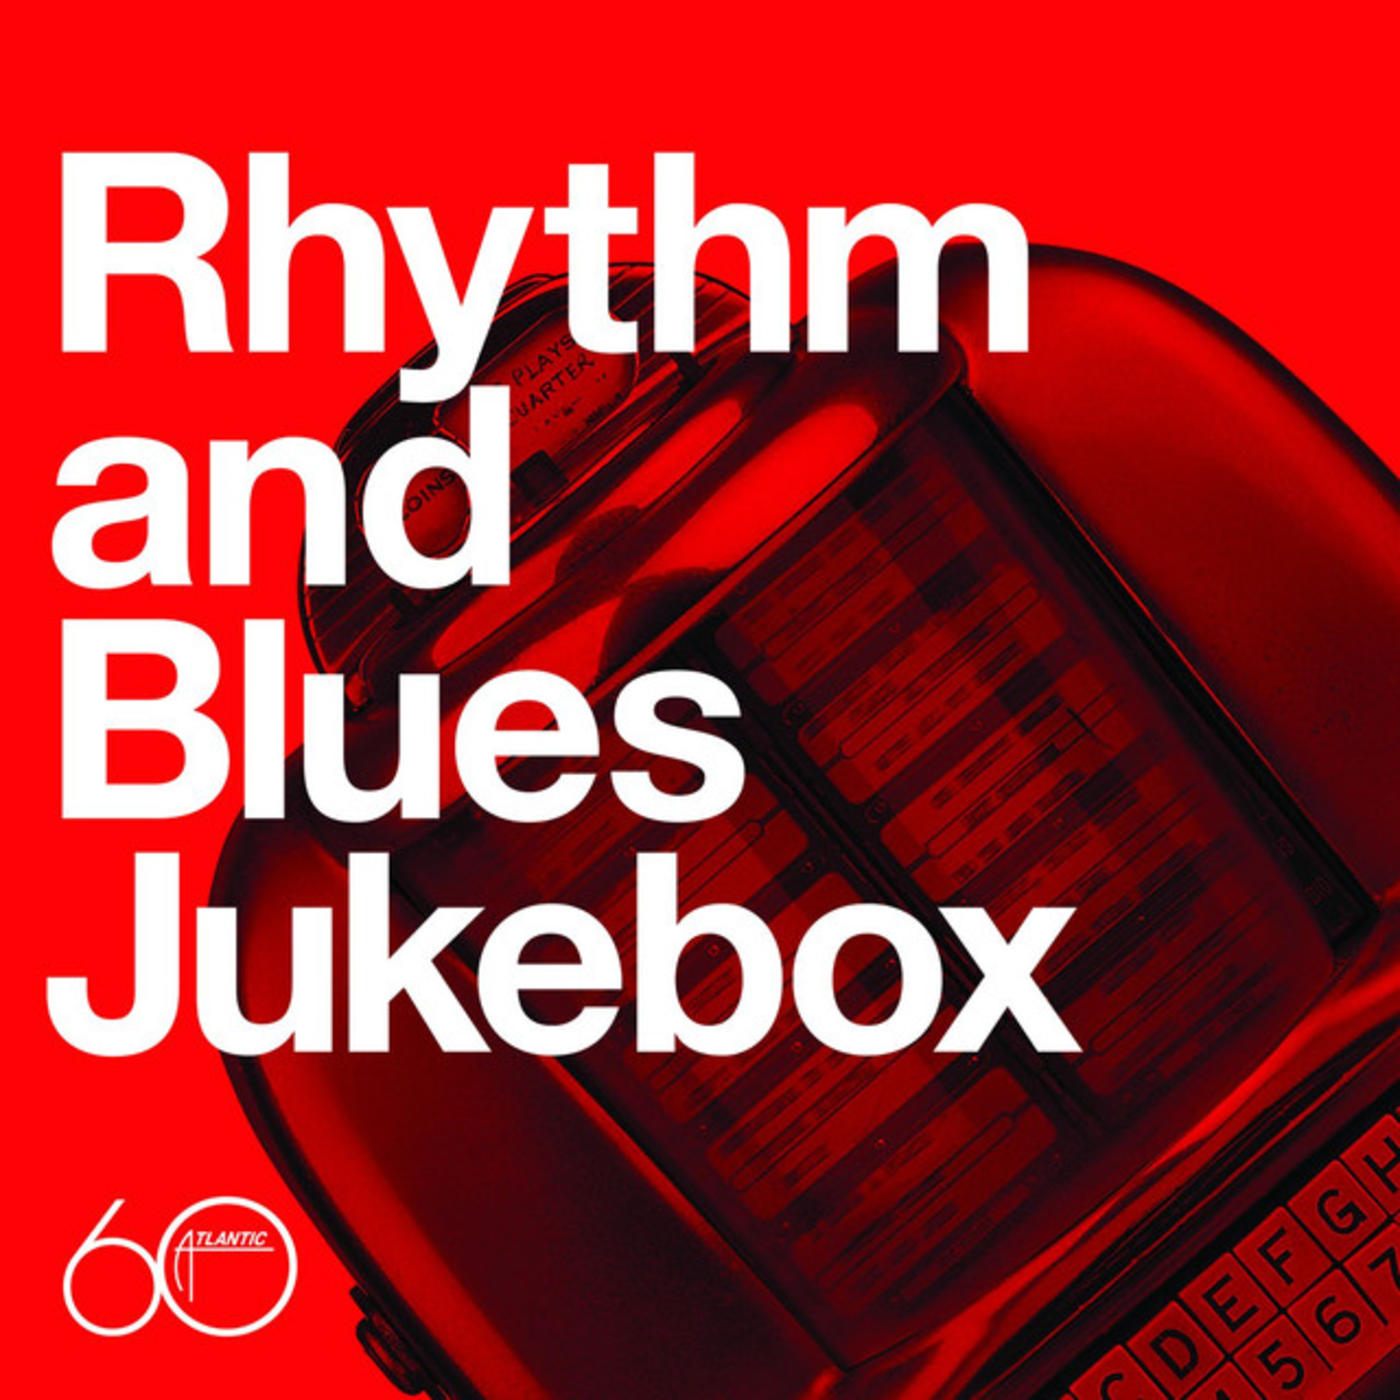 Atlantic 60th: Rhythm And Blues Jukebox